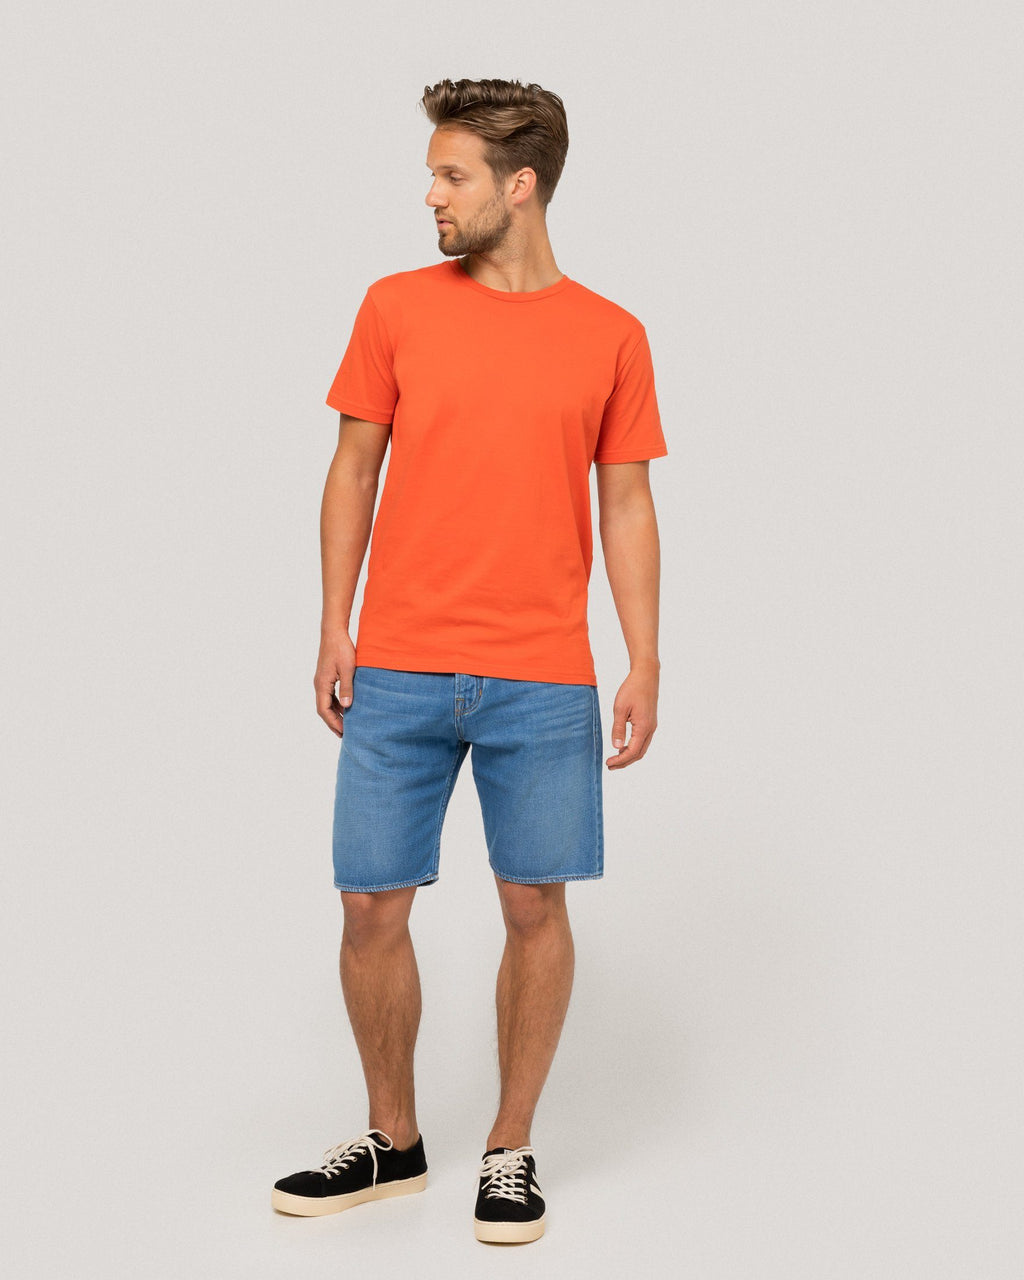 variant_1 | EN Blue Bermuda Shorts Denim Jeans Men Kings of Indigo | DE Blaue Bermuda Jeans Shorts Herren Kings of Indigo